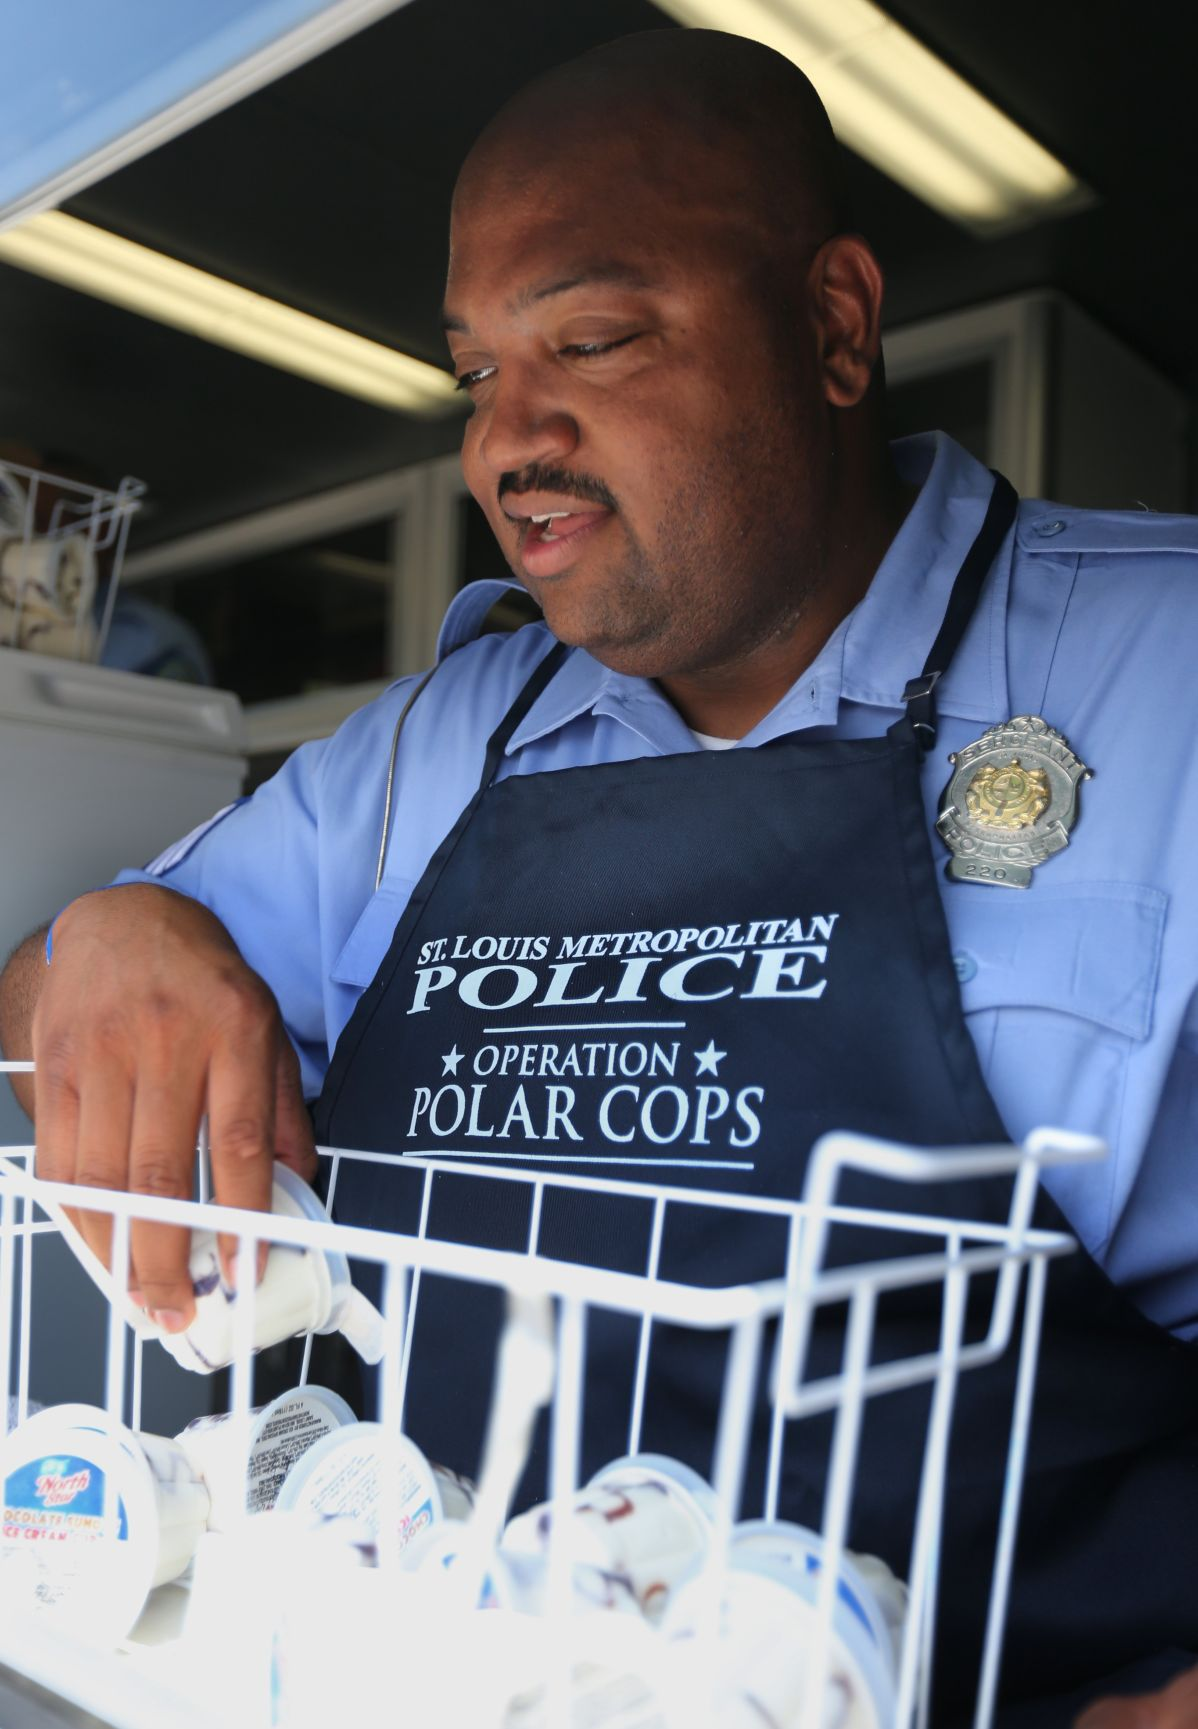 Operation Polar Cops, St. Louis police give free ice cream to kids